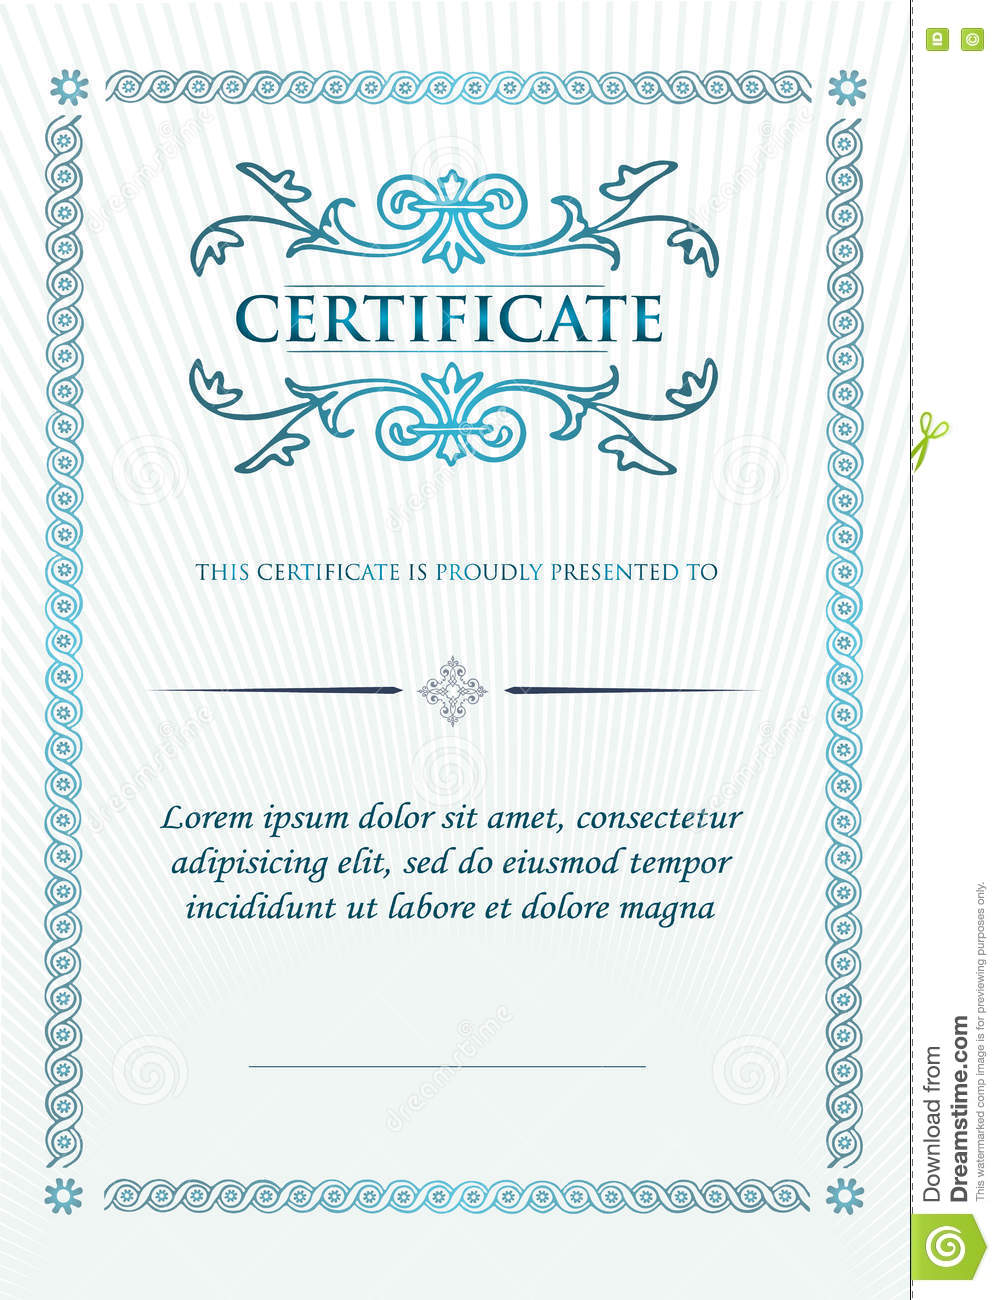 elegant classic certificate of achievement vintage frames and